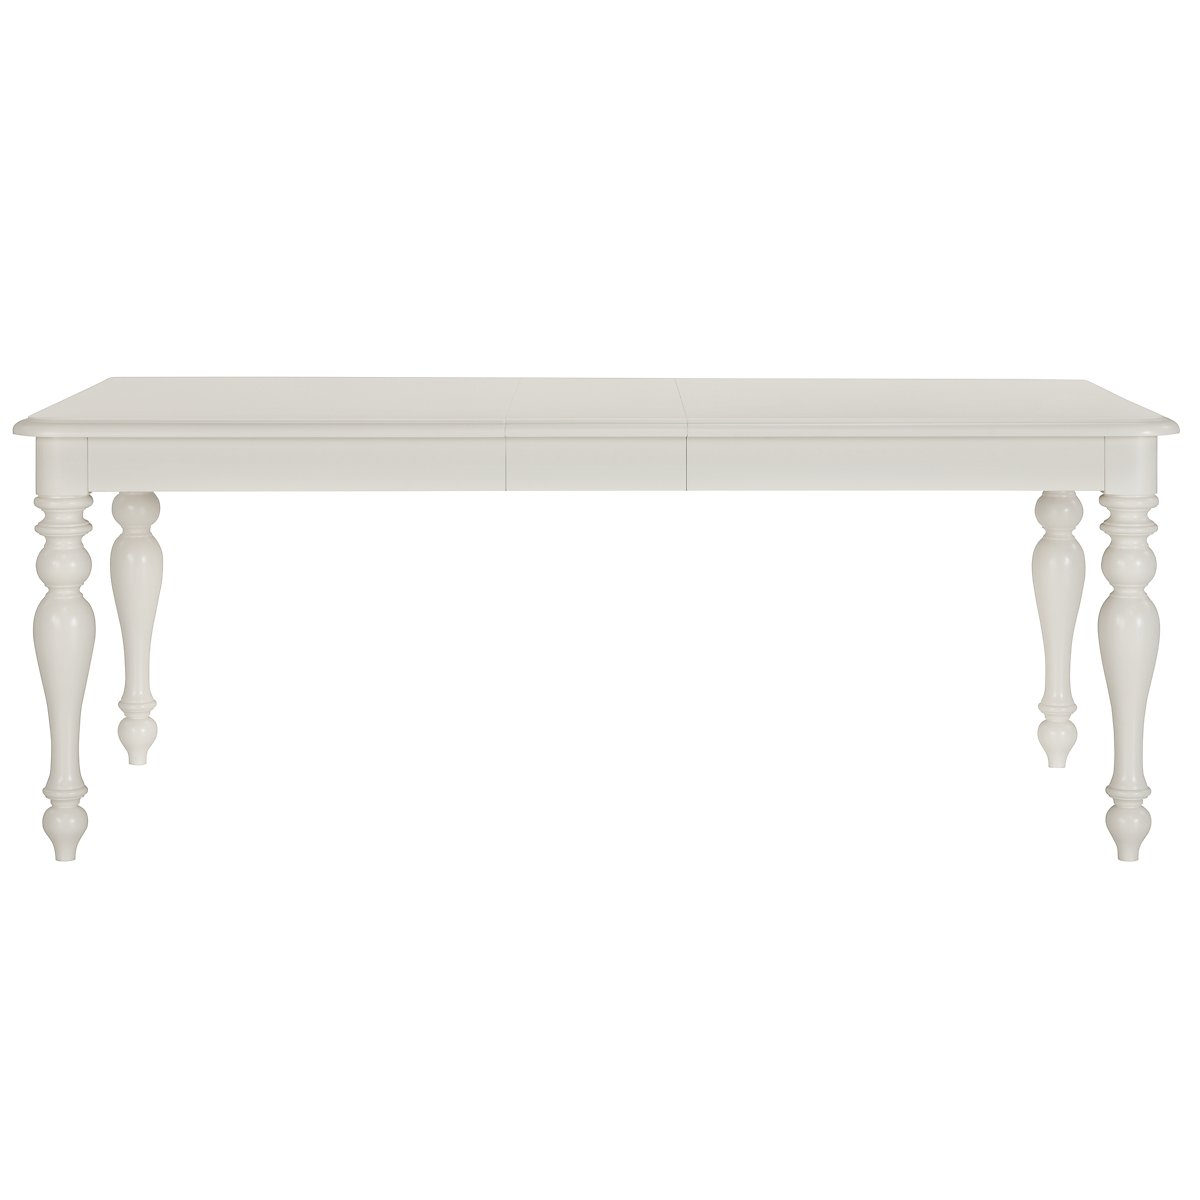 Quinn White Wood Rectangular Table